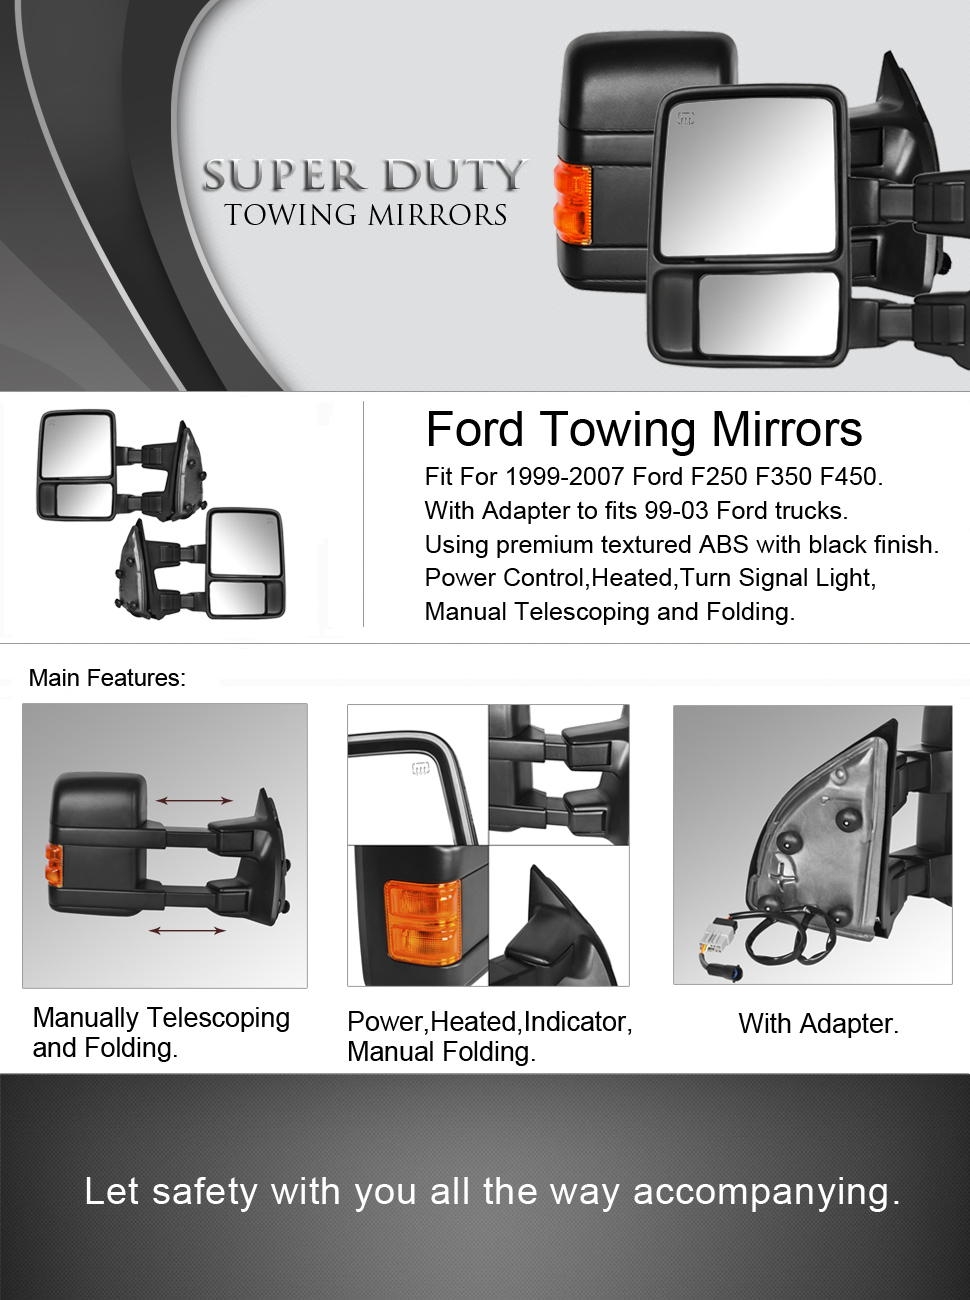 3e4EMyExQyWq._UX970_TTW_ amazon com dedc ford towing mirrors f250 ford tow mirrors f350  at panicattacktreatment.co